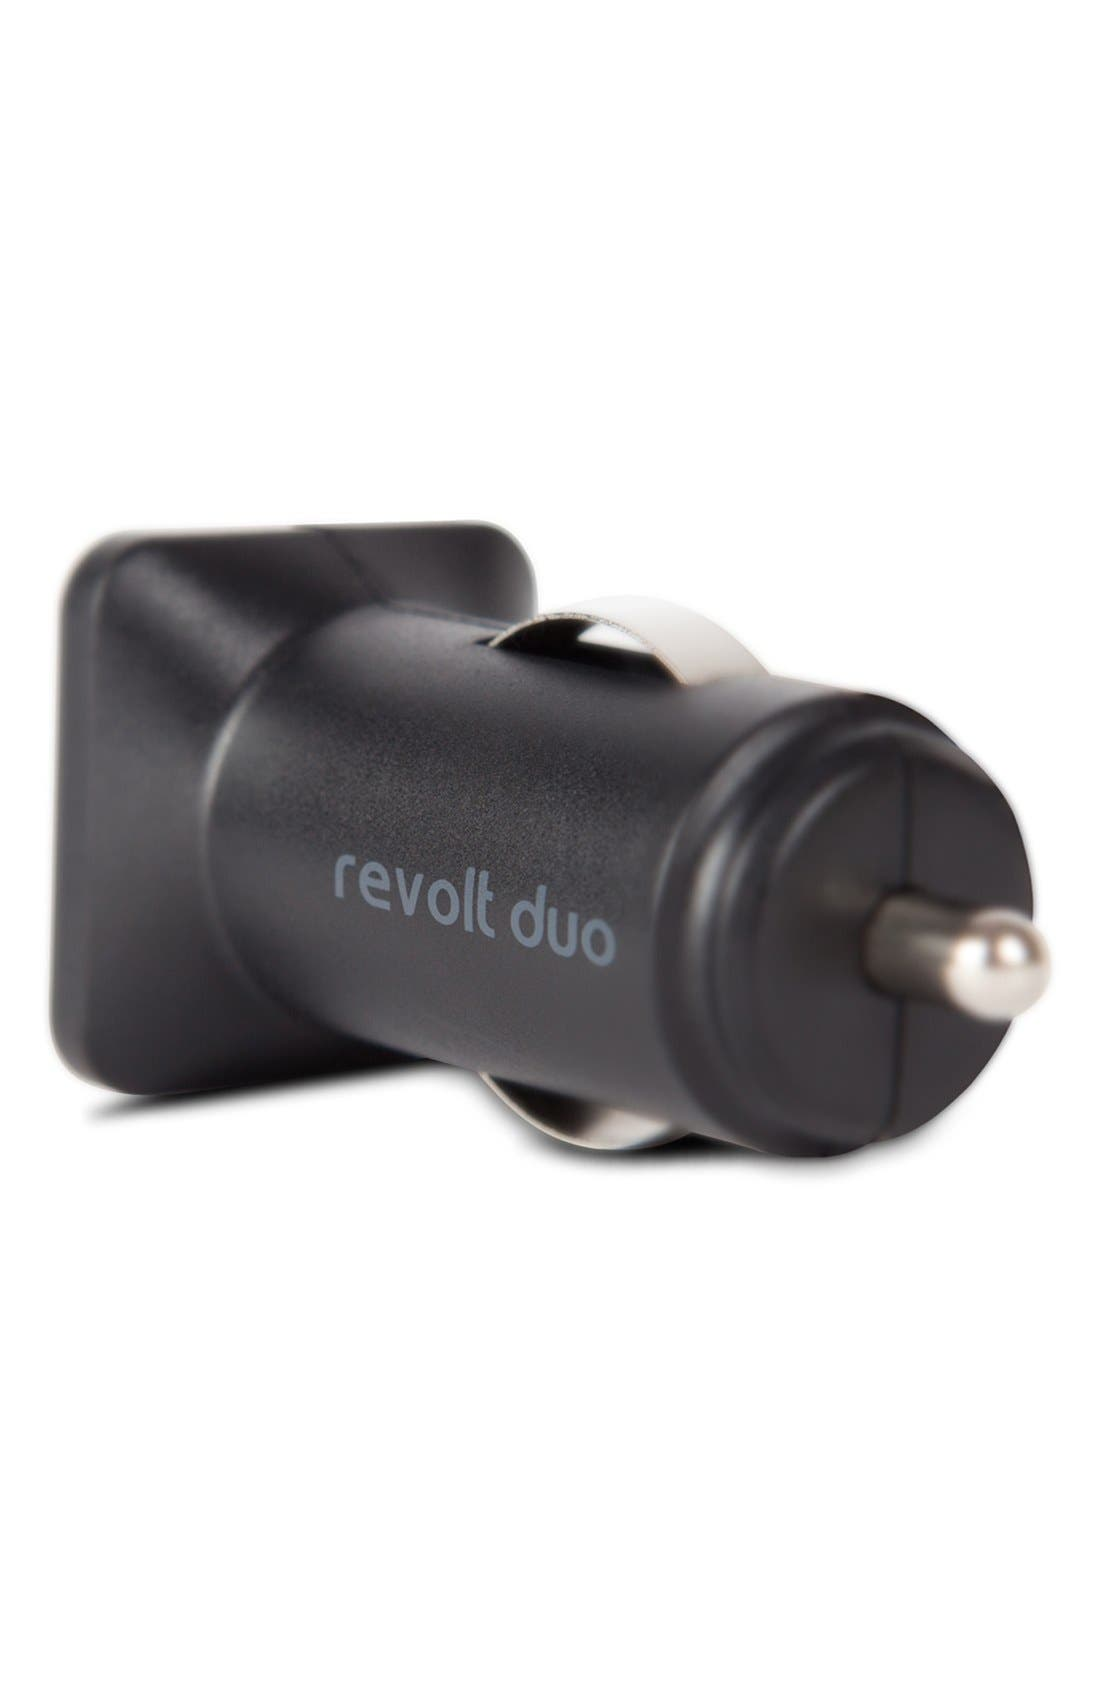 Alternate Image 3  - Moshi 'Revolt Duo' USB Car Charger